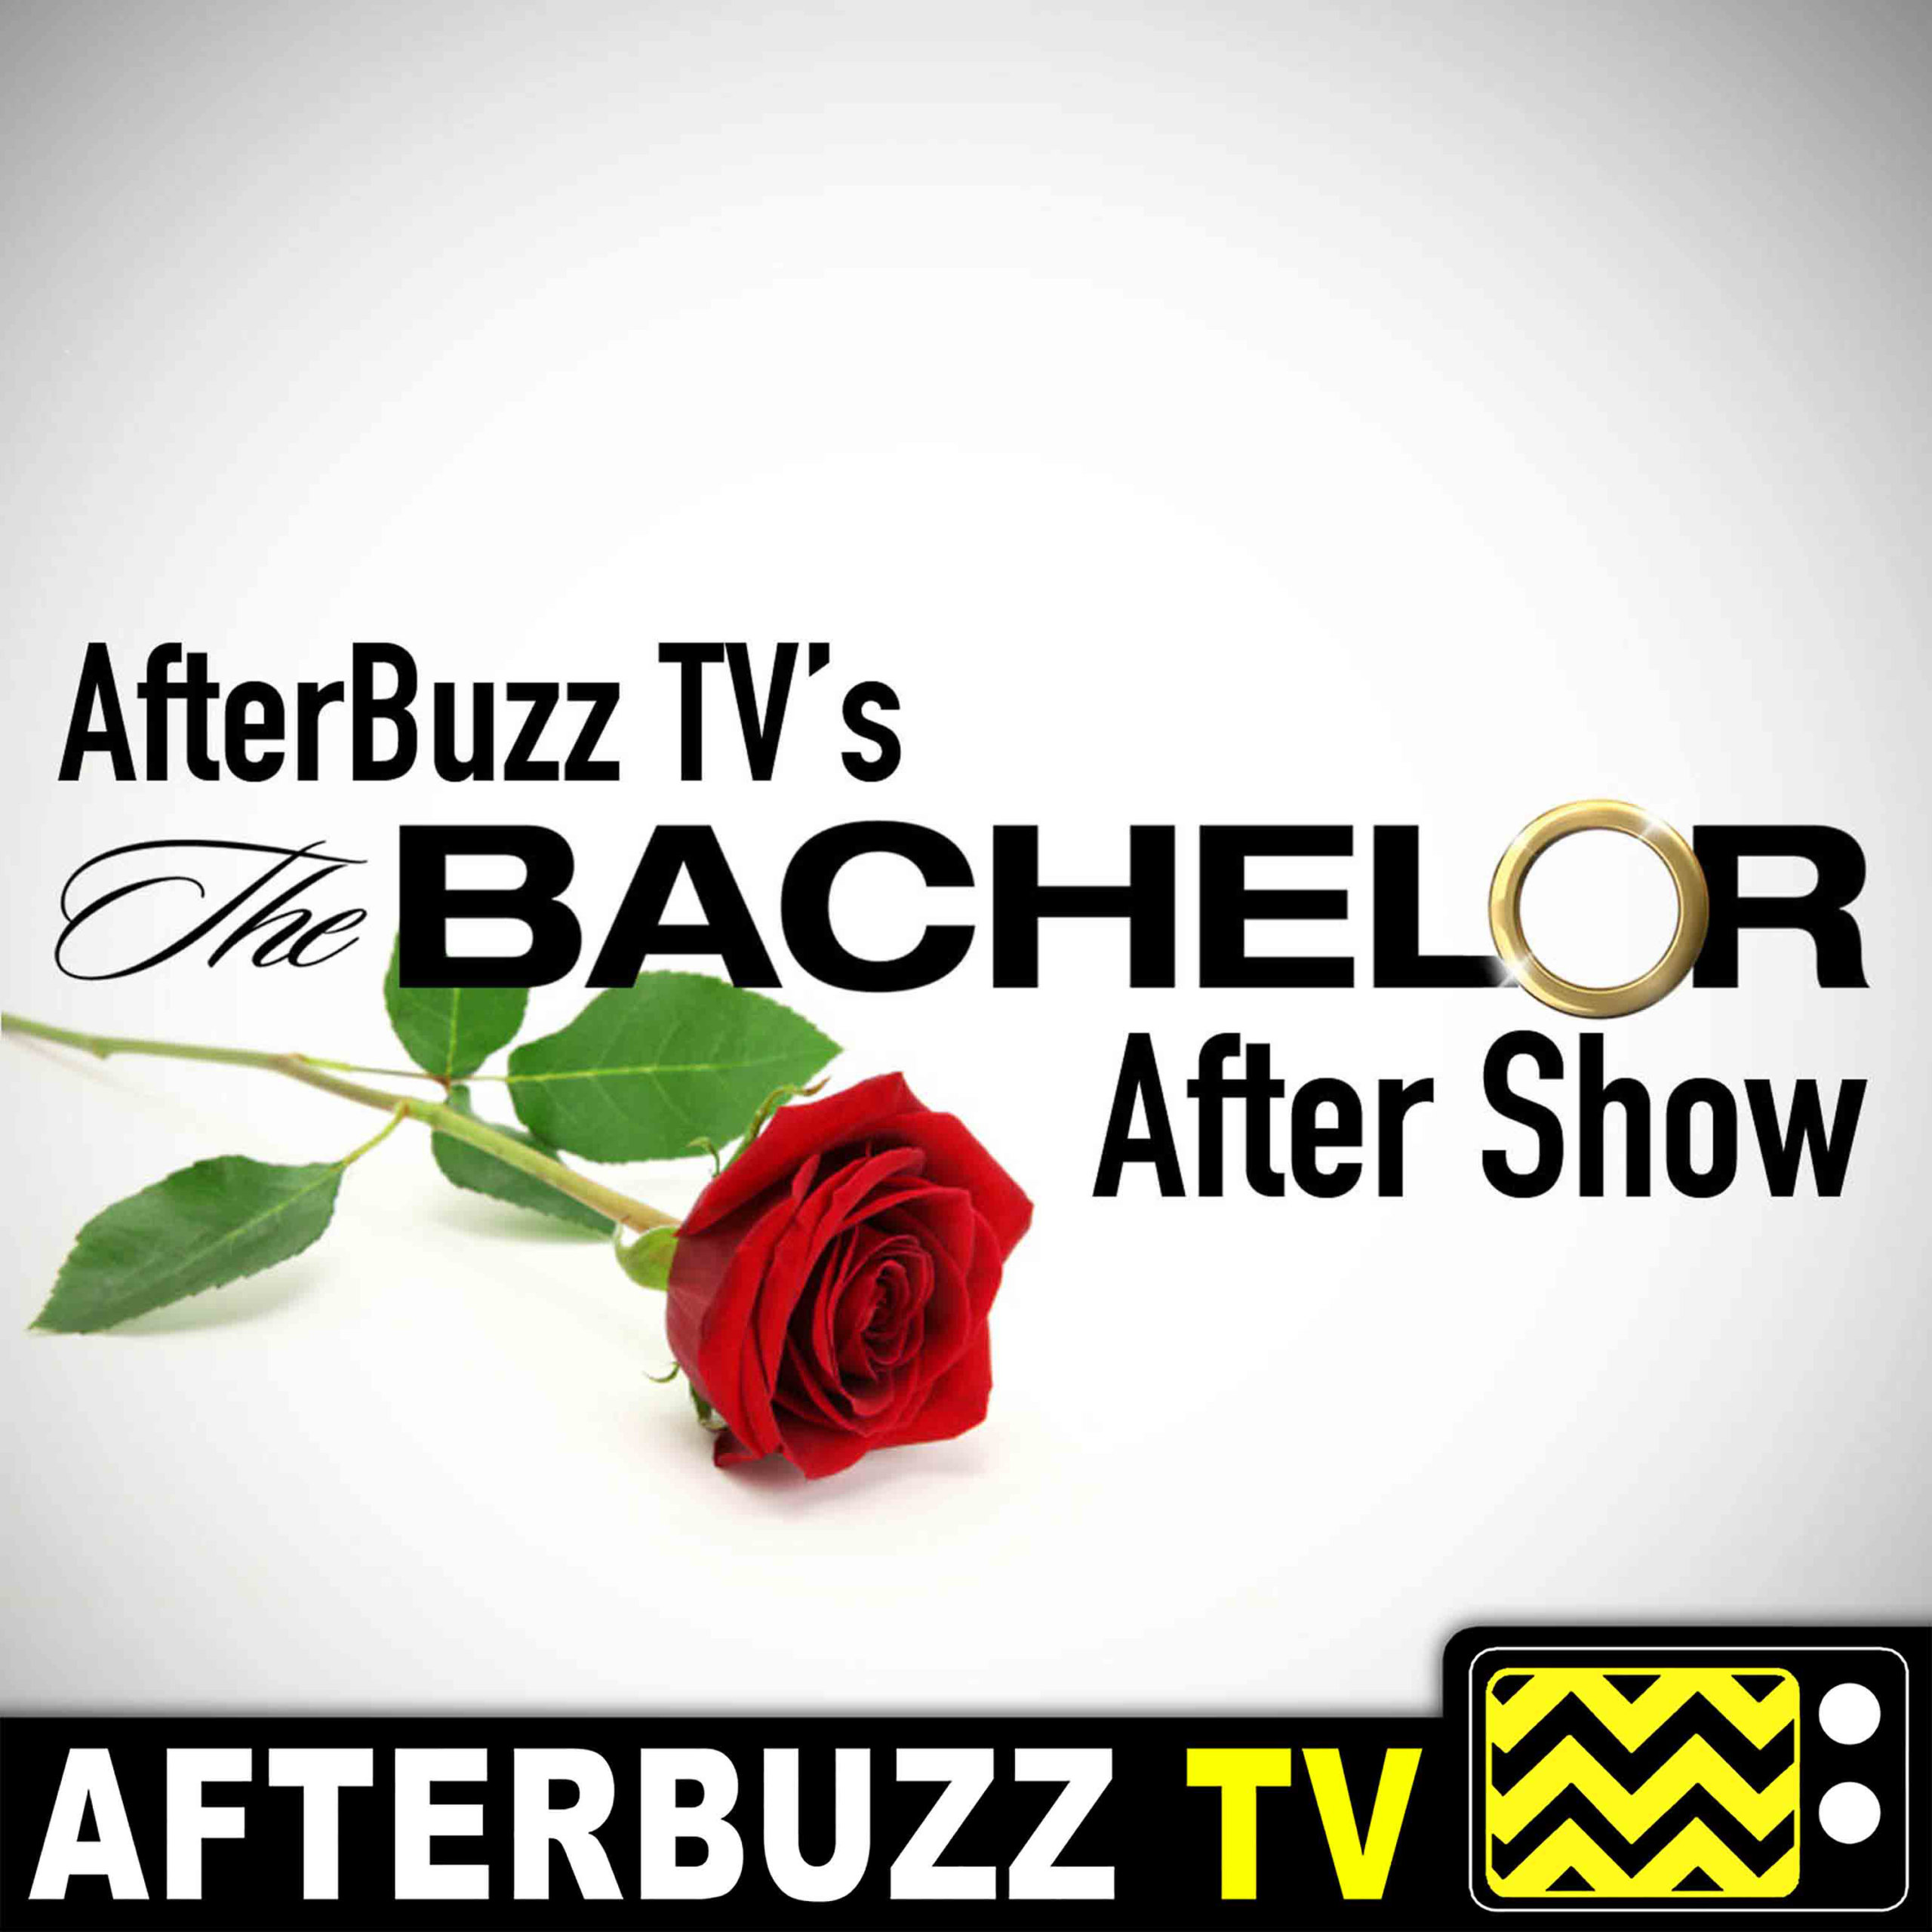 Discussion on Diversity in The Bachelor